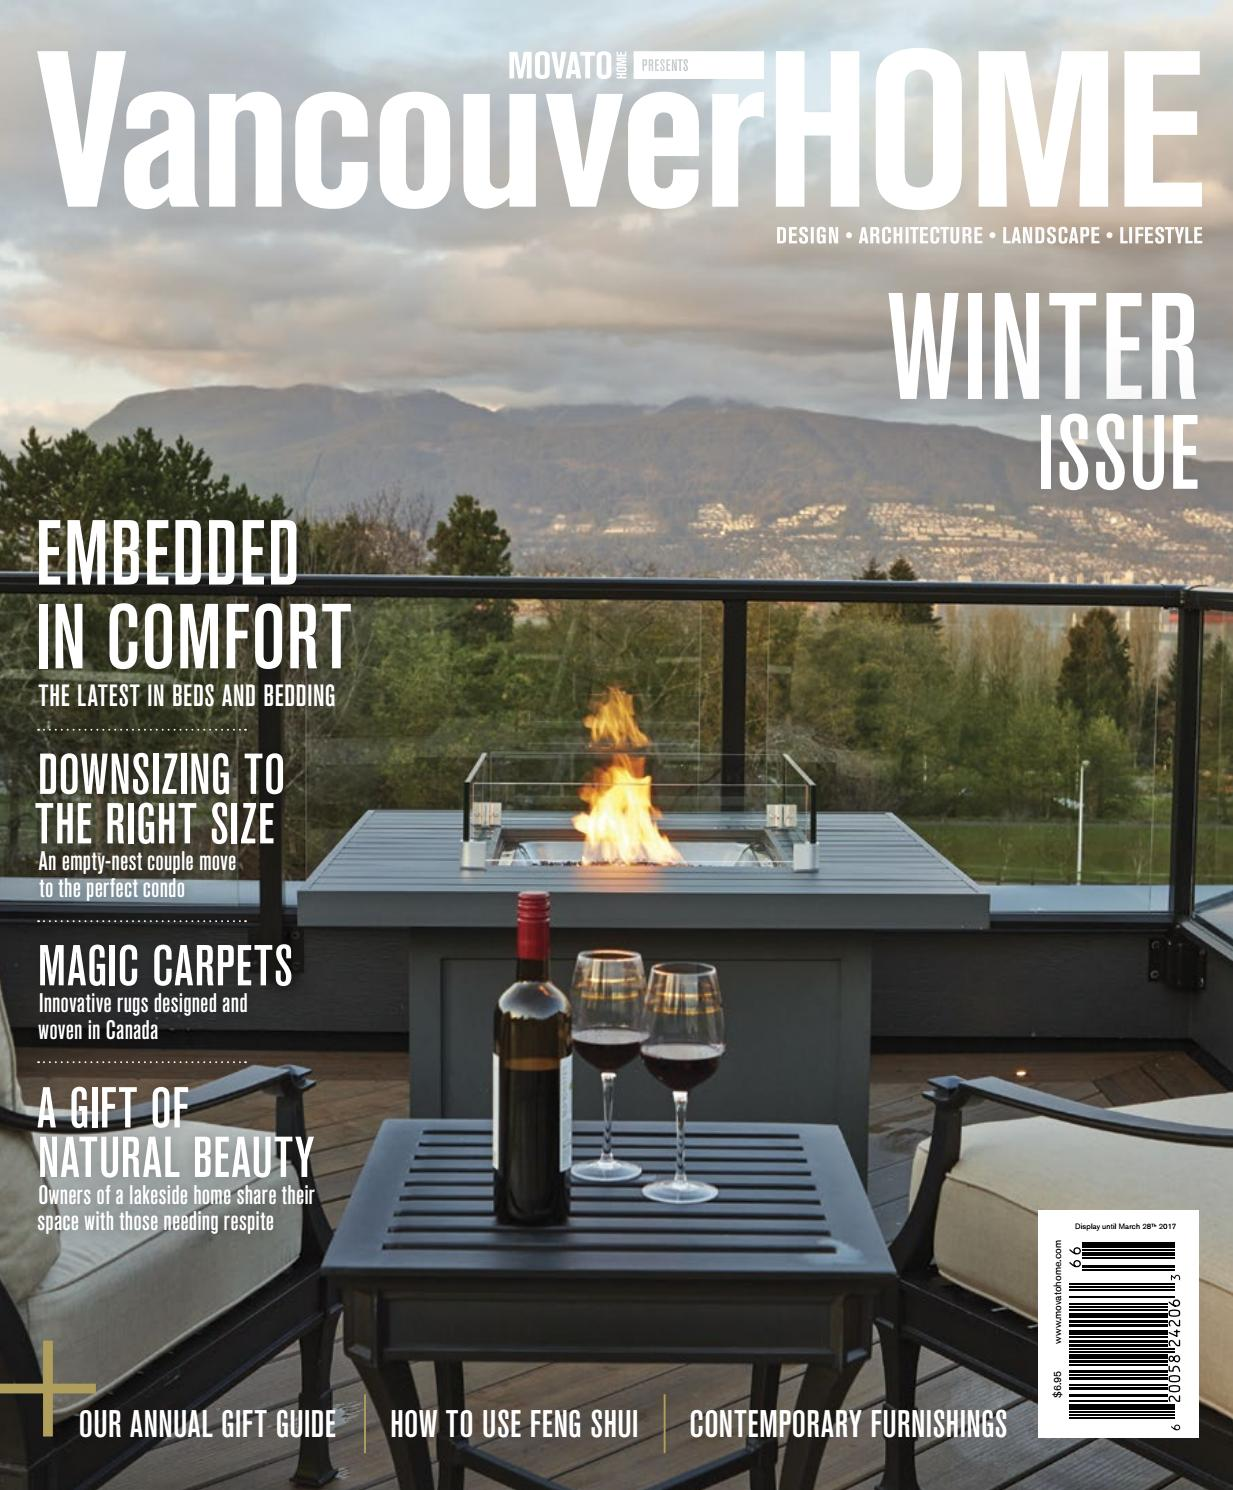 Vancouver Home Winter 2016 2017 by MovatoHome